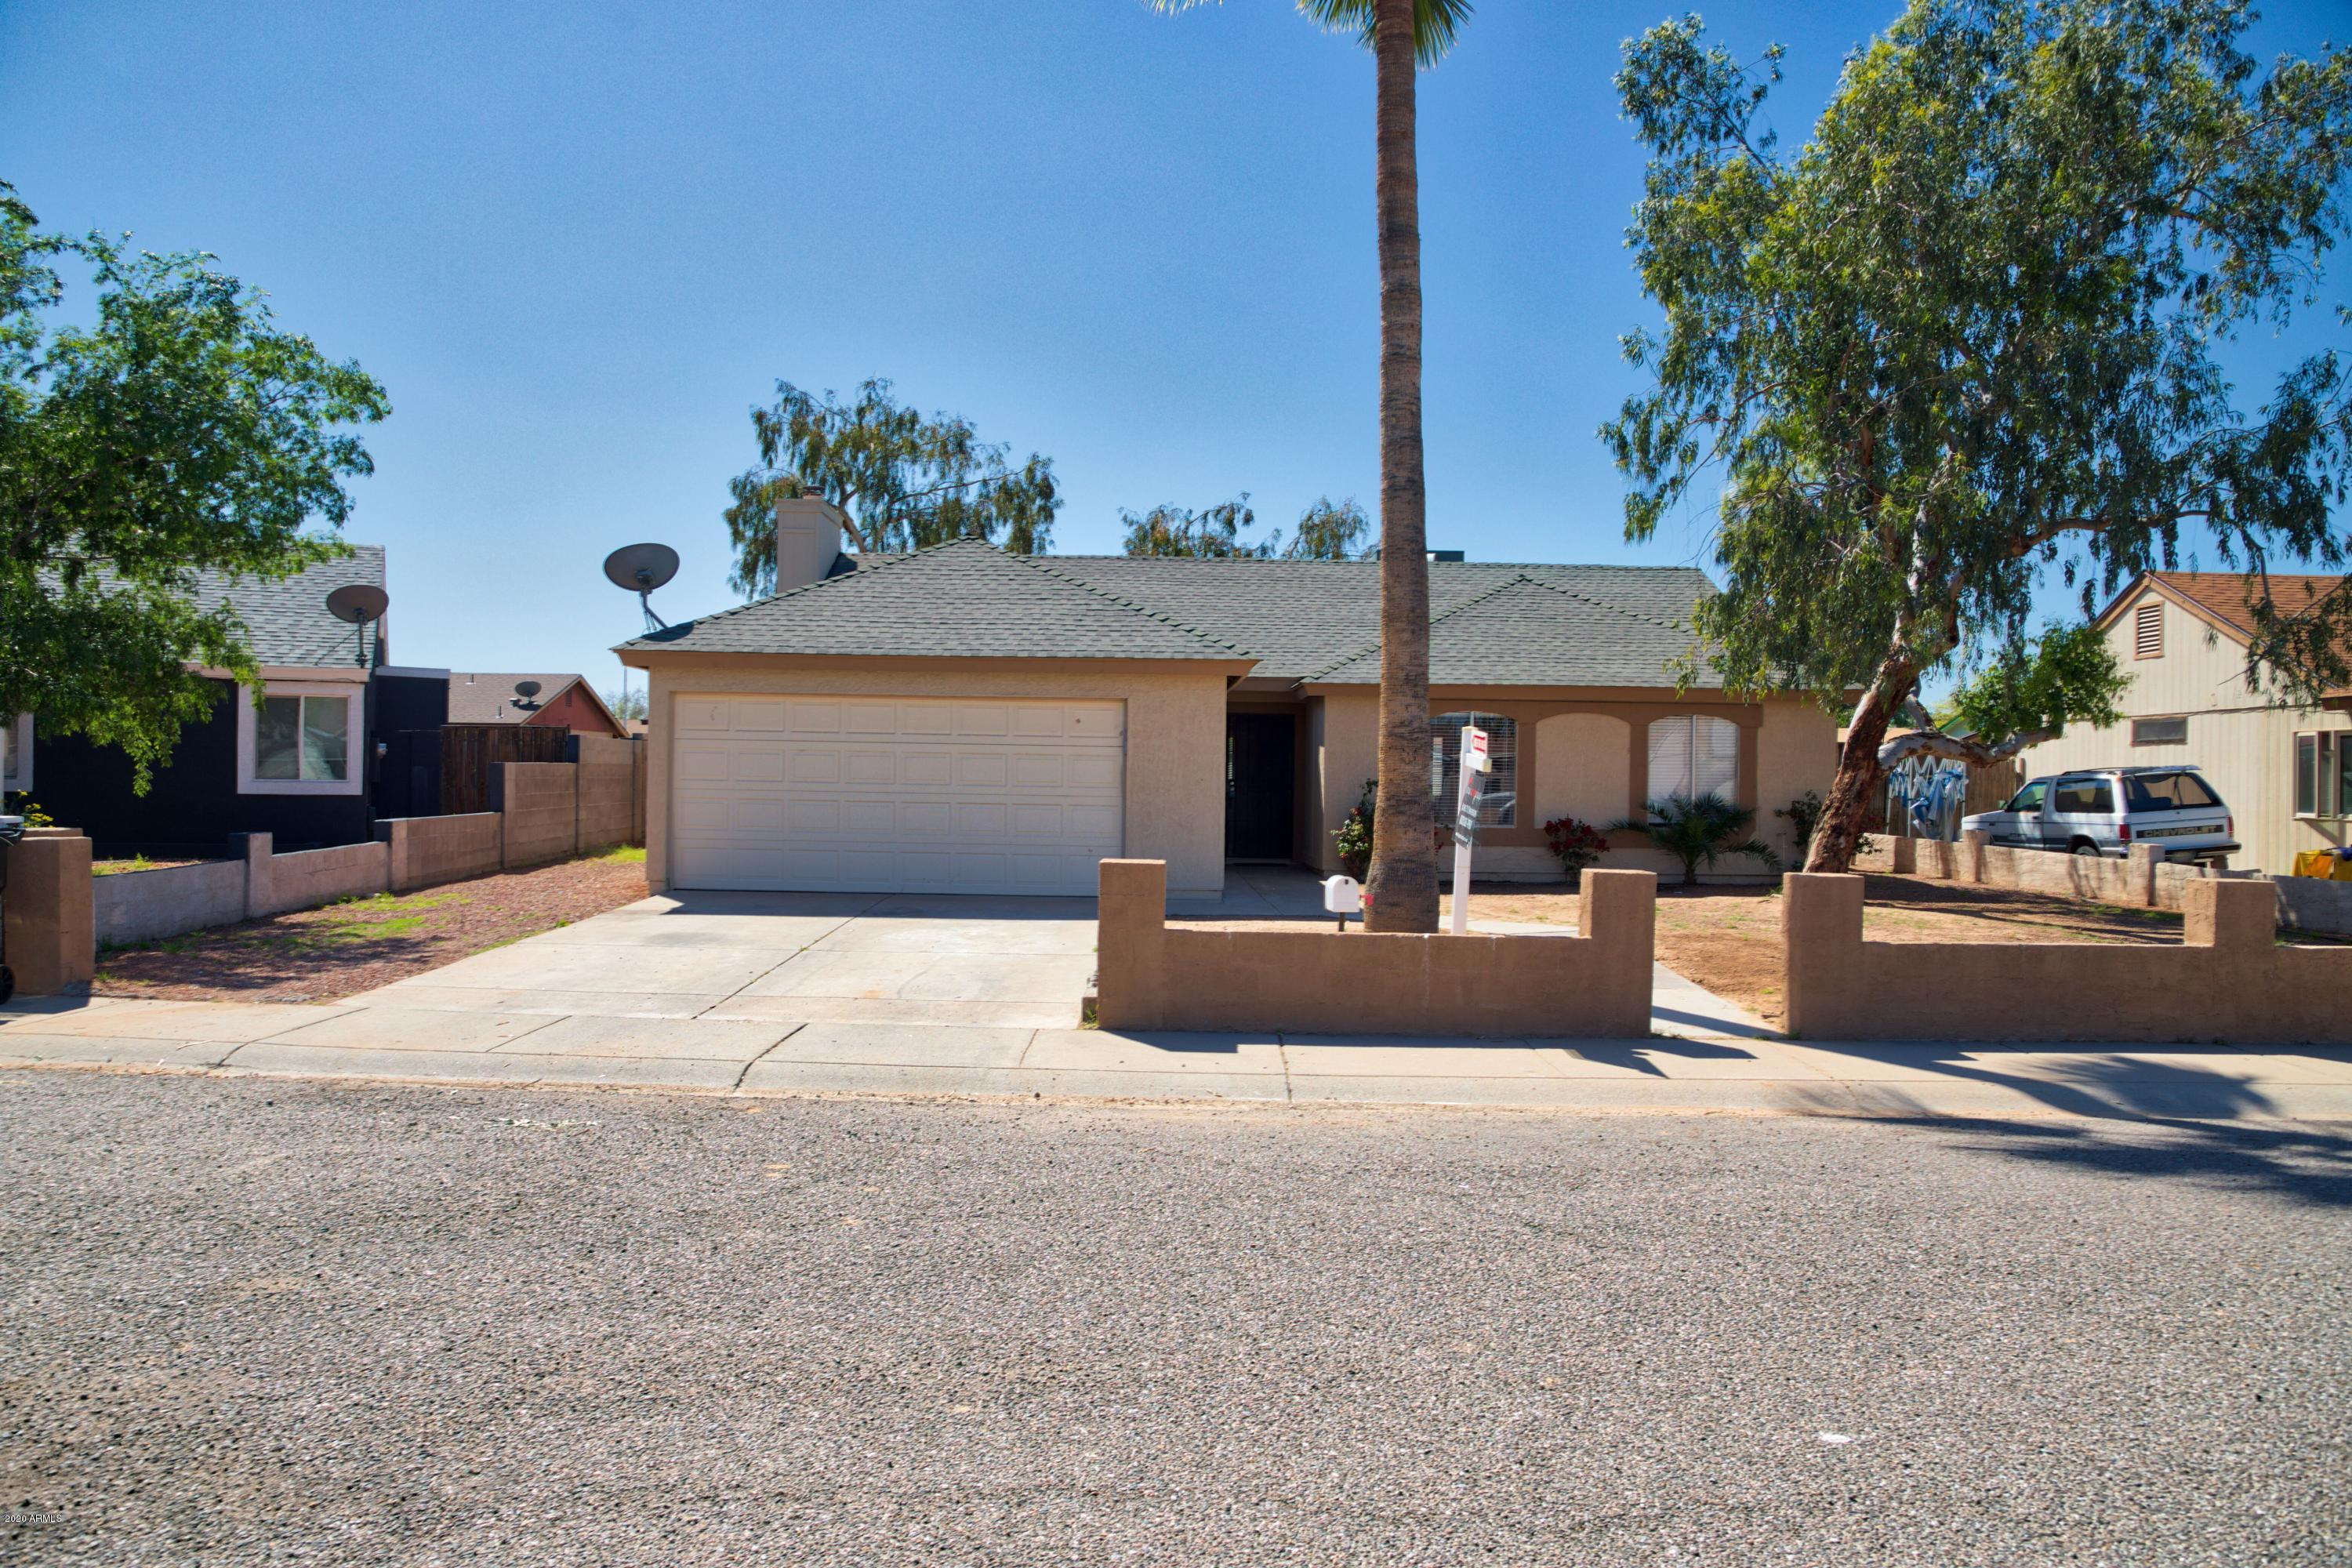 Photo of 7741 W MINNEZONA Avenue, Phoenix, AZ 85033